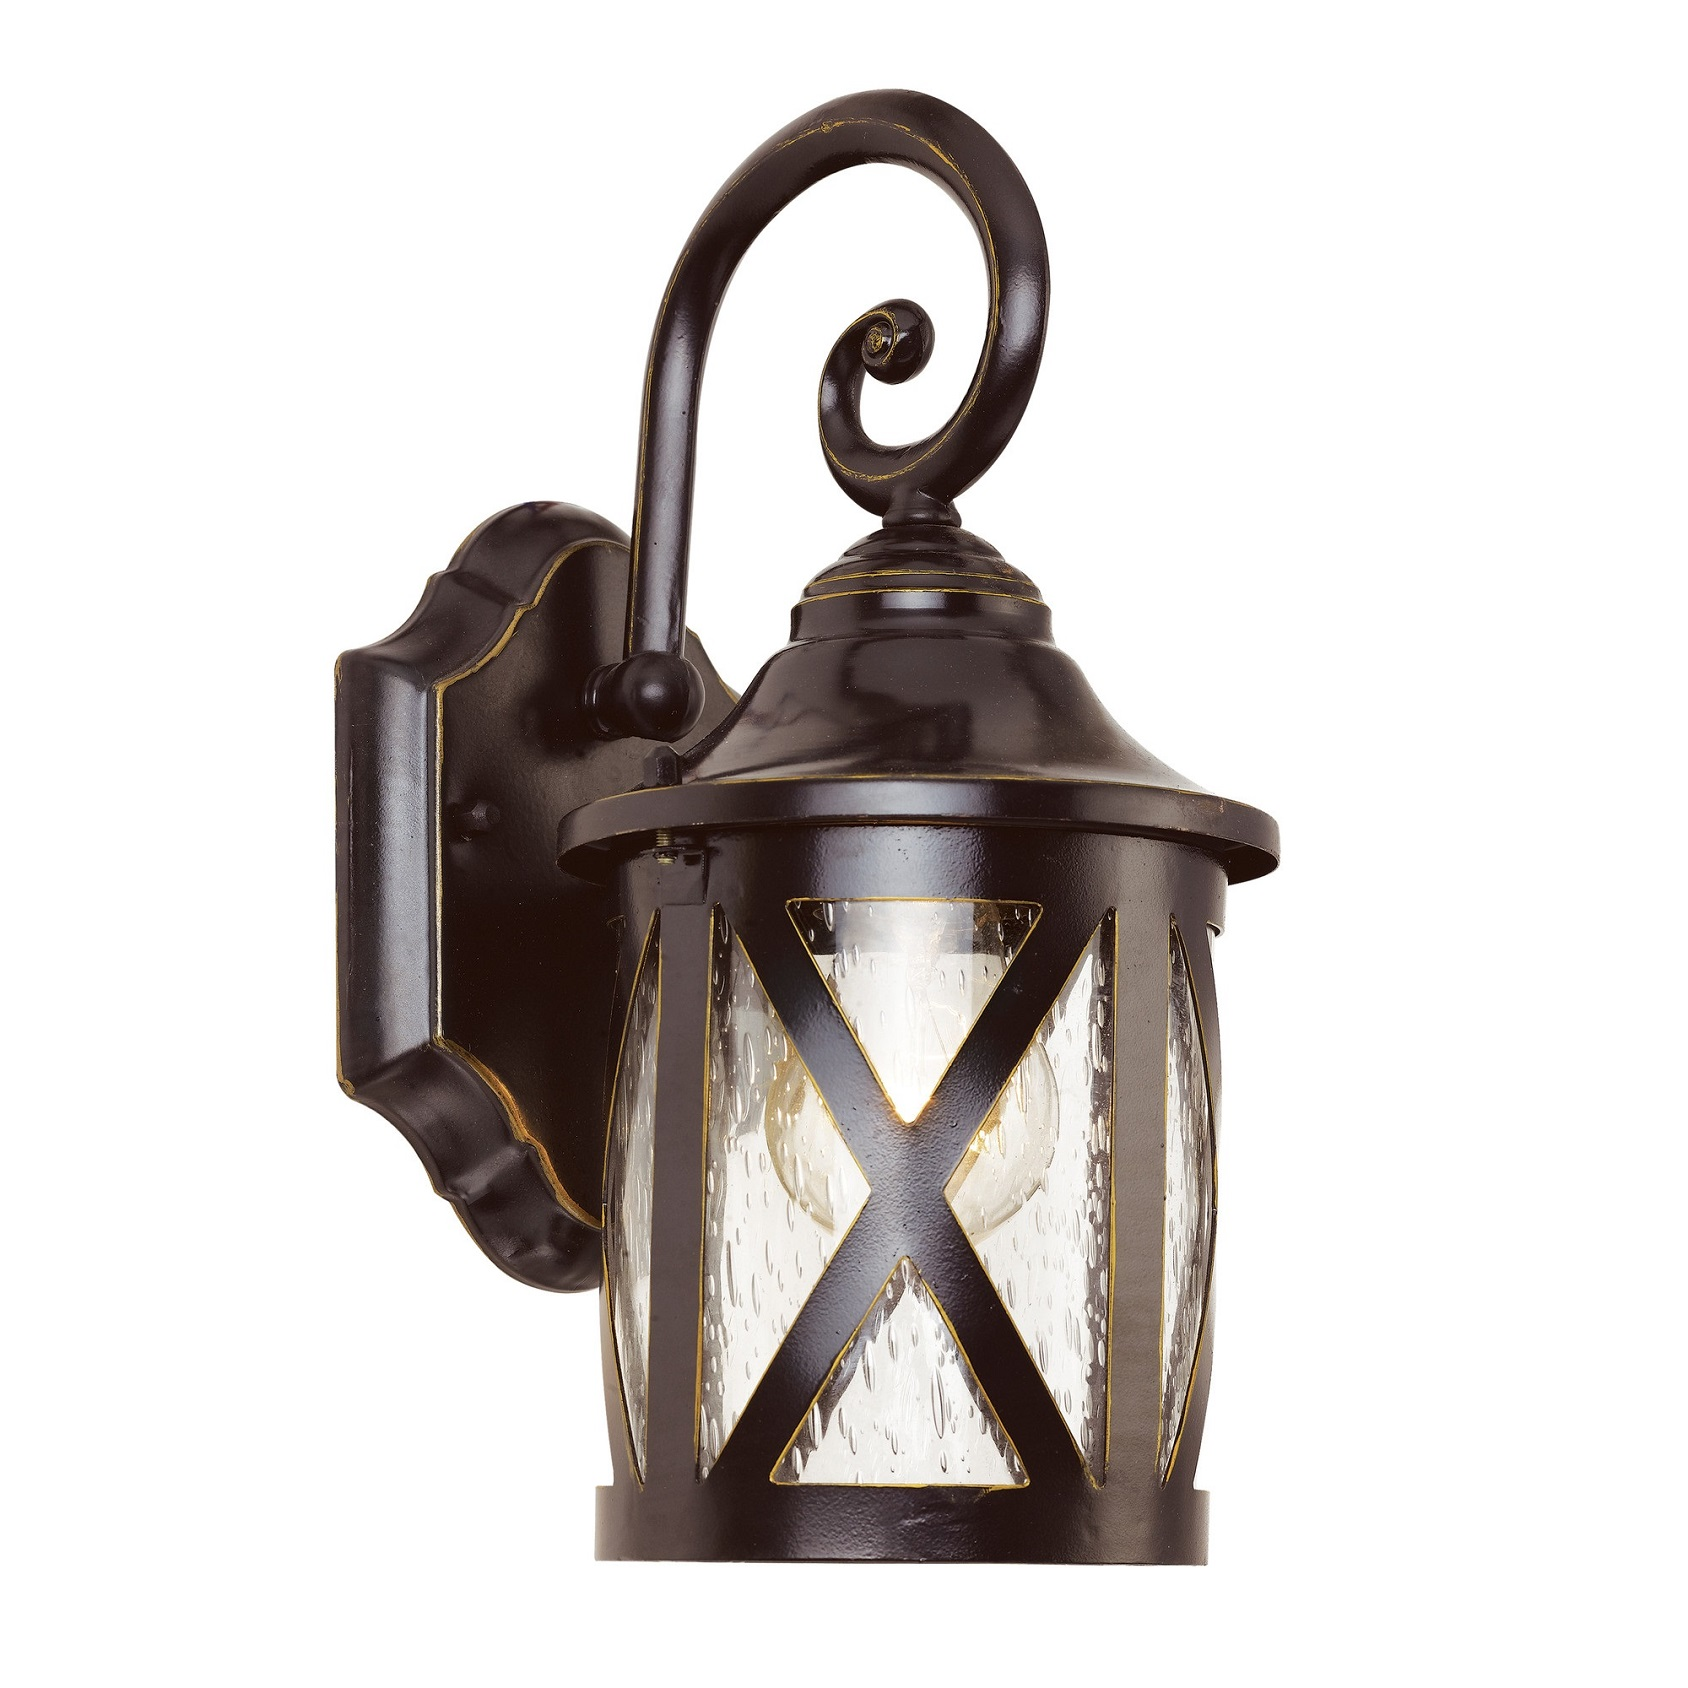 Transglobe Lighting New England 1 Light Outdoor Wall